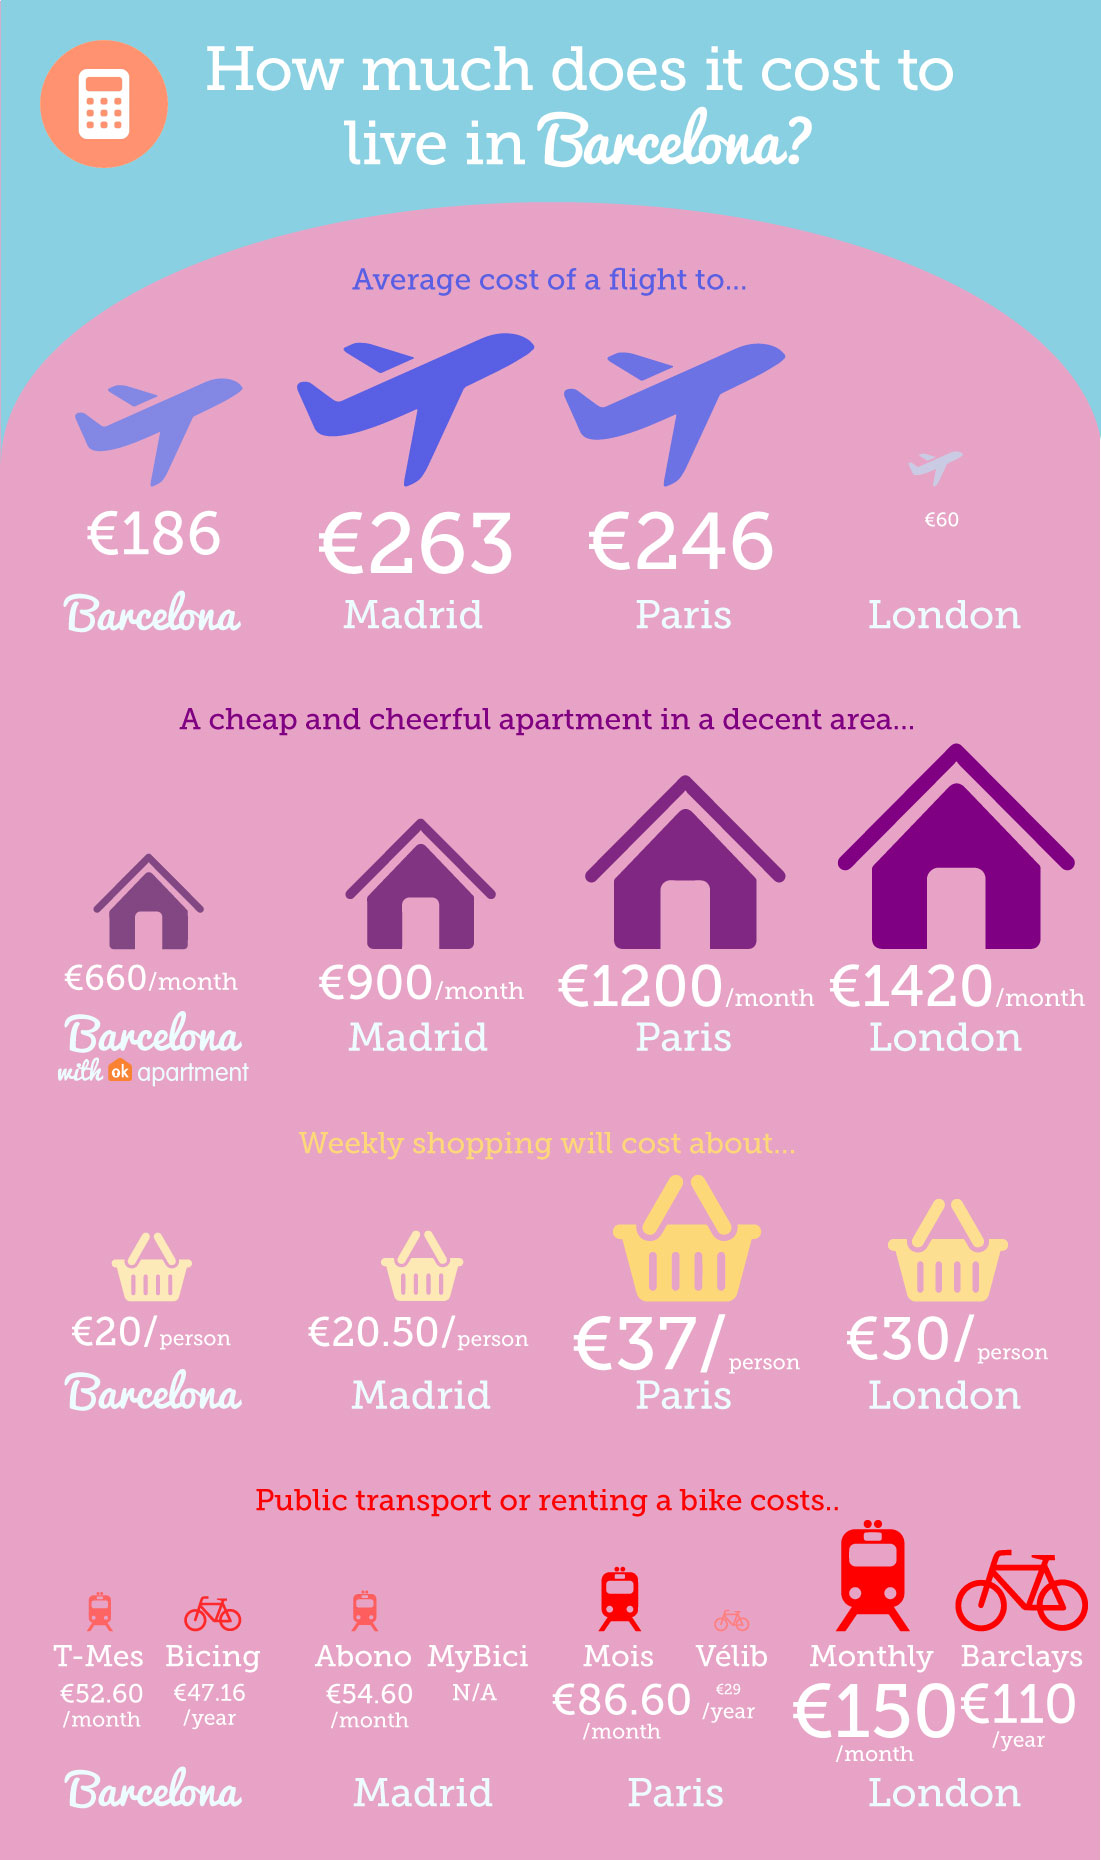 infographic - how much does it cost to live in barcelona?